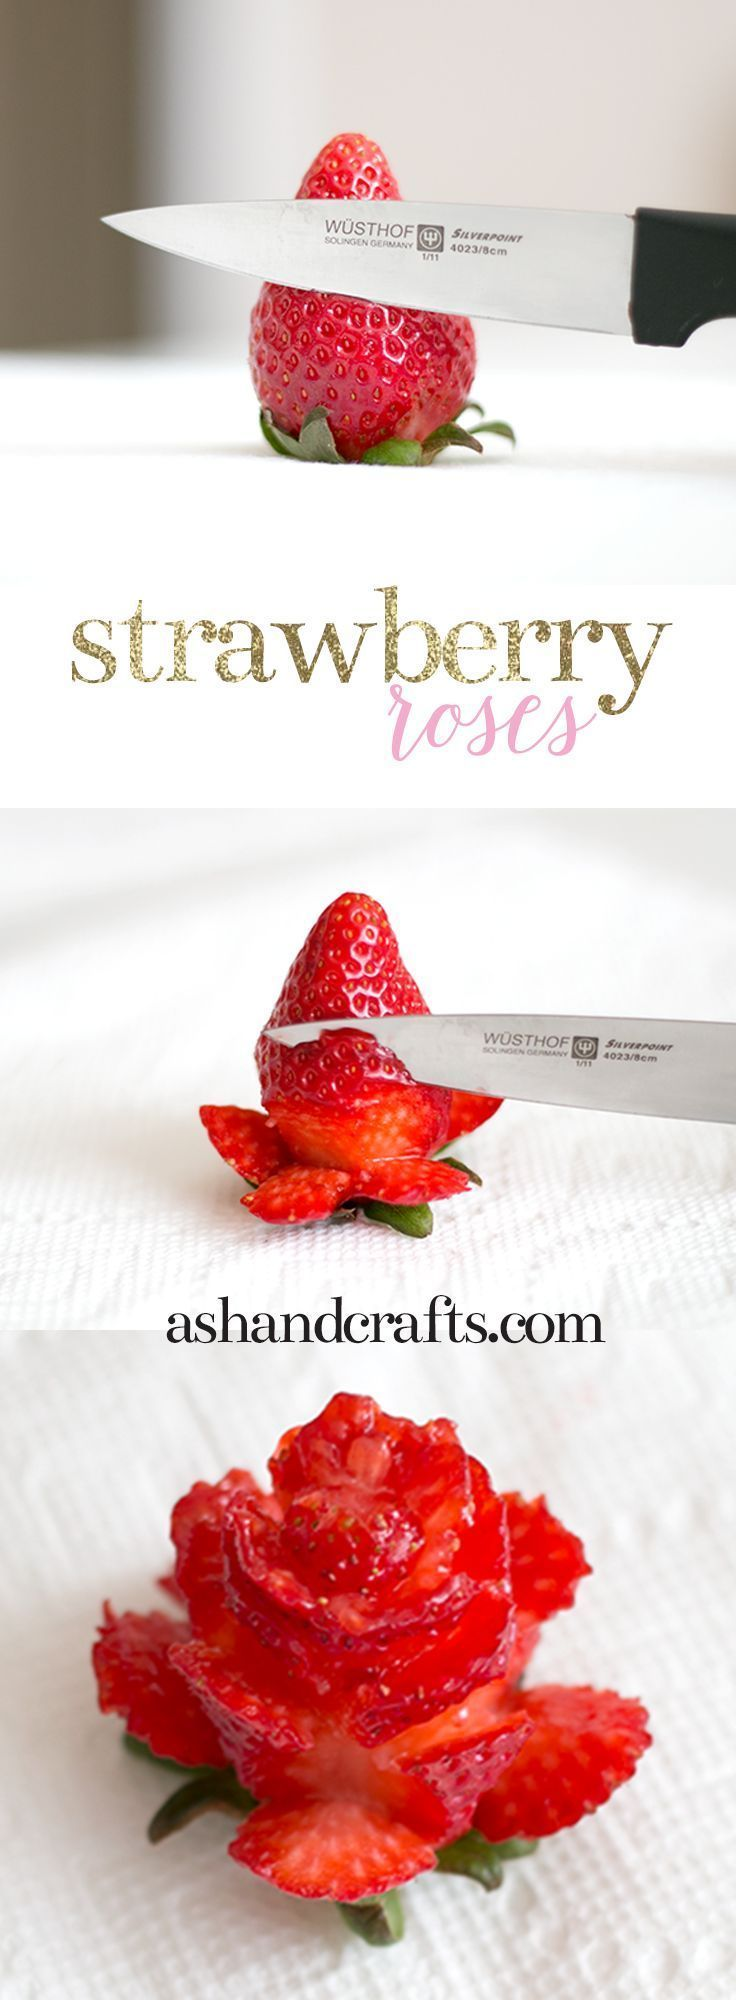 25 best ideas about strawberry decorations on pinterest - How to slice strawberries for decoration ...